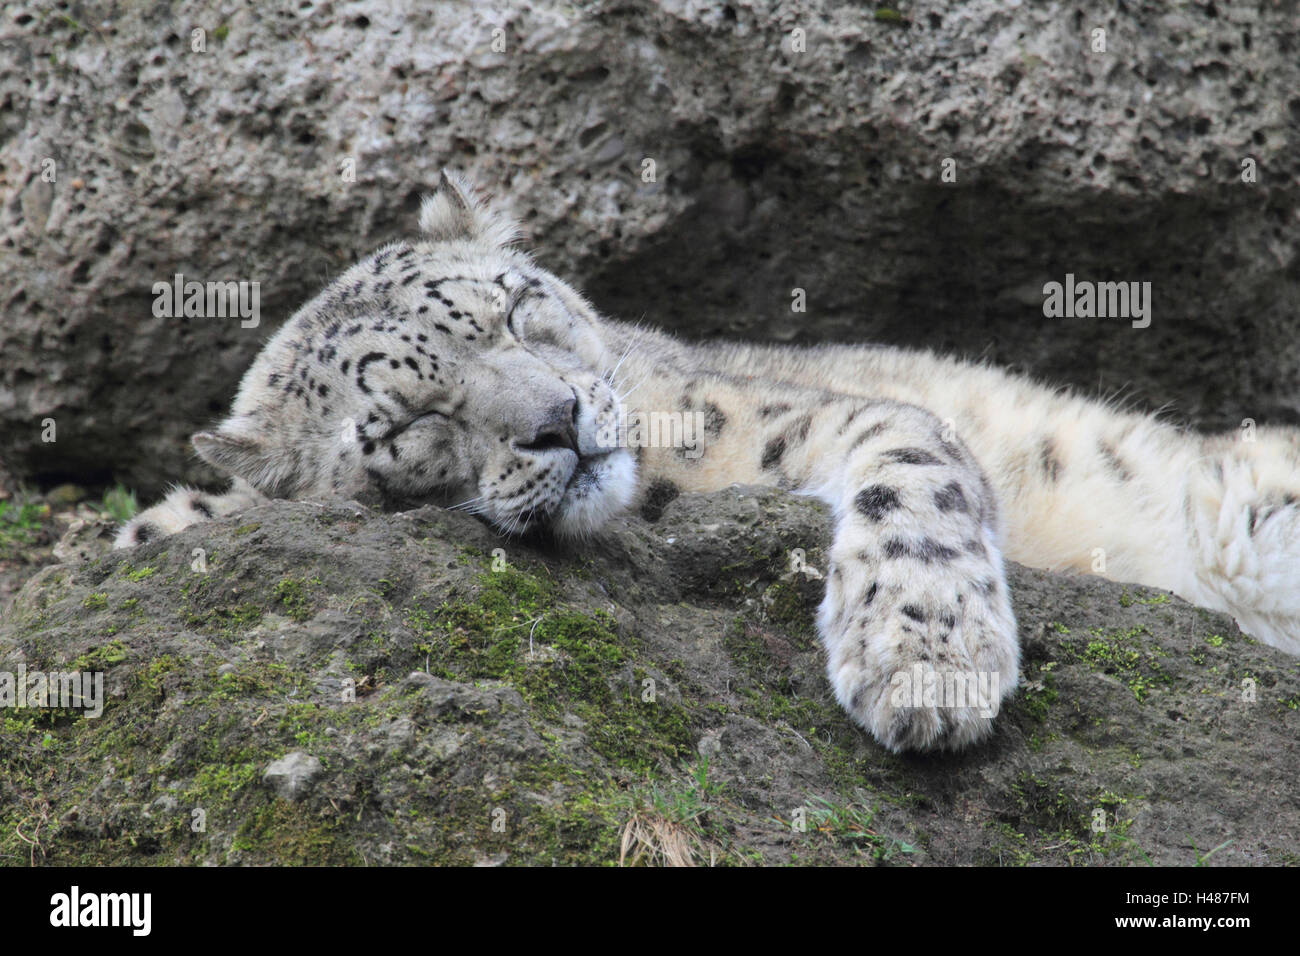 Snow leopard, sleeps, - Stock Image